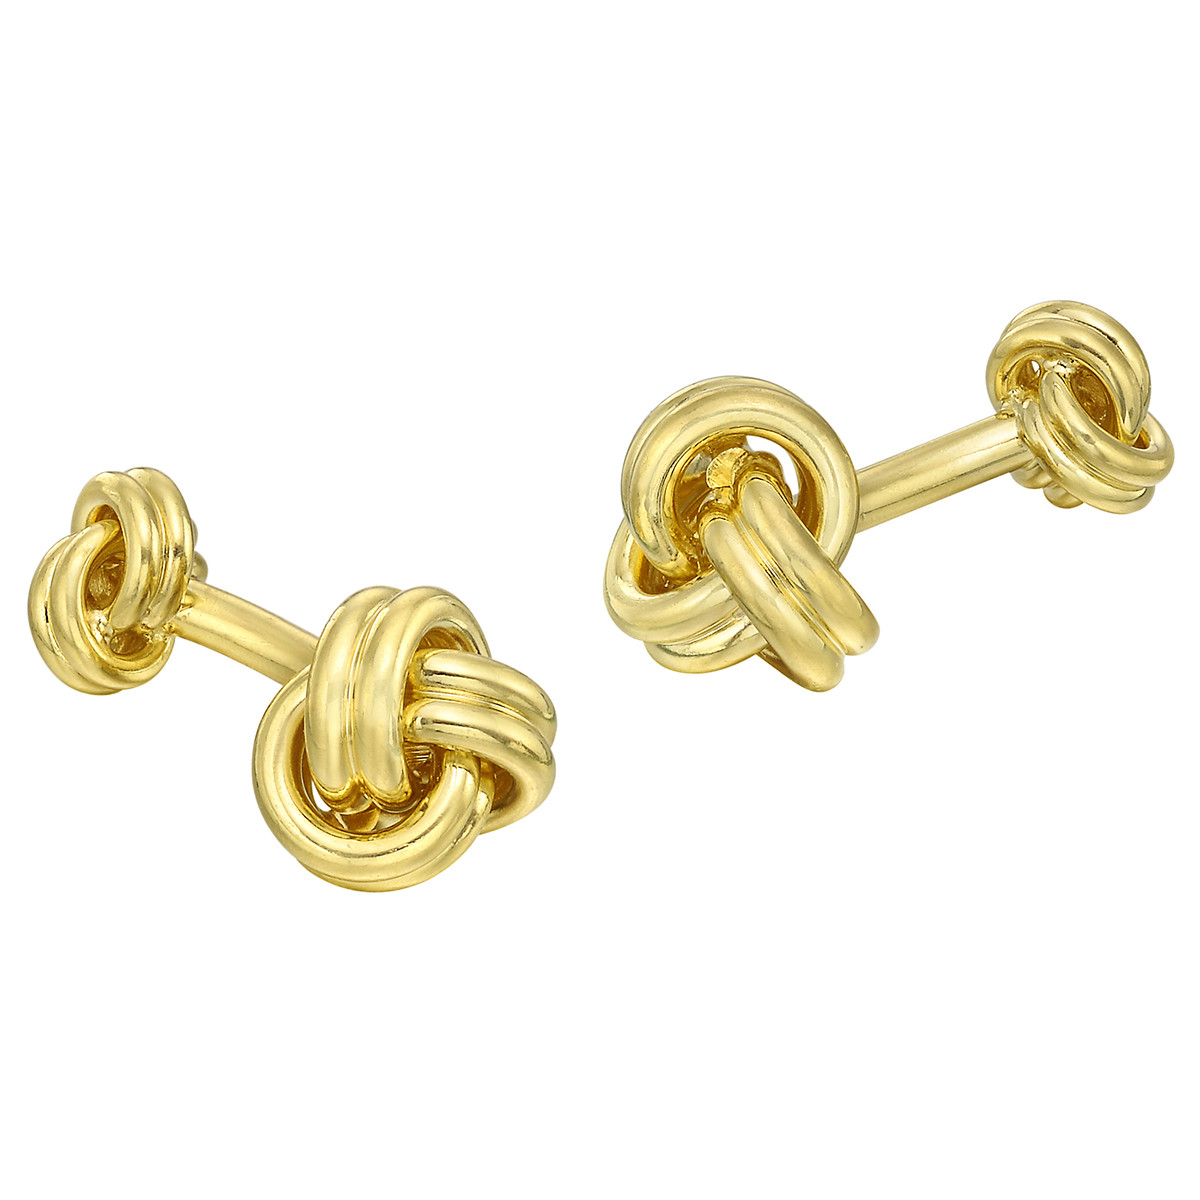 18k Yellow Gold Triple Knot Cufflinks